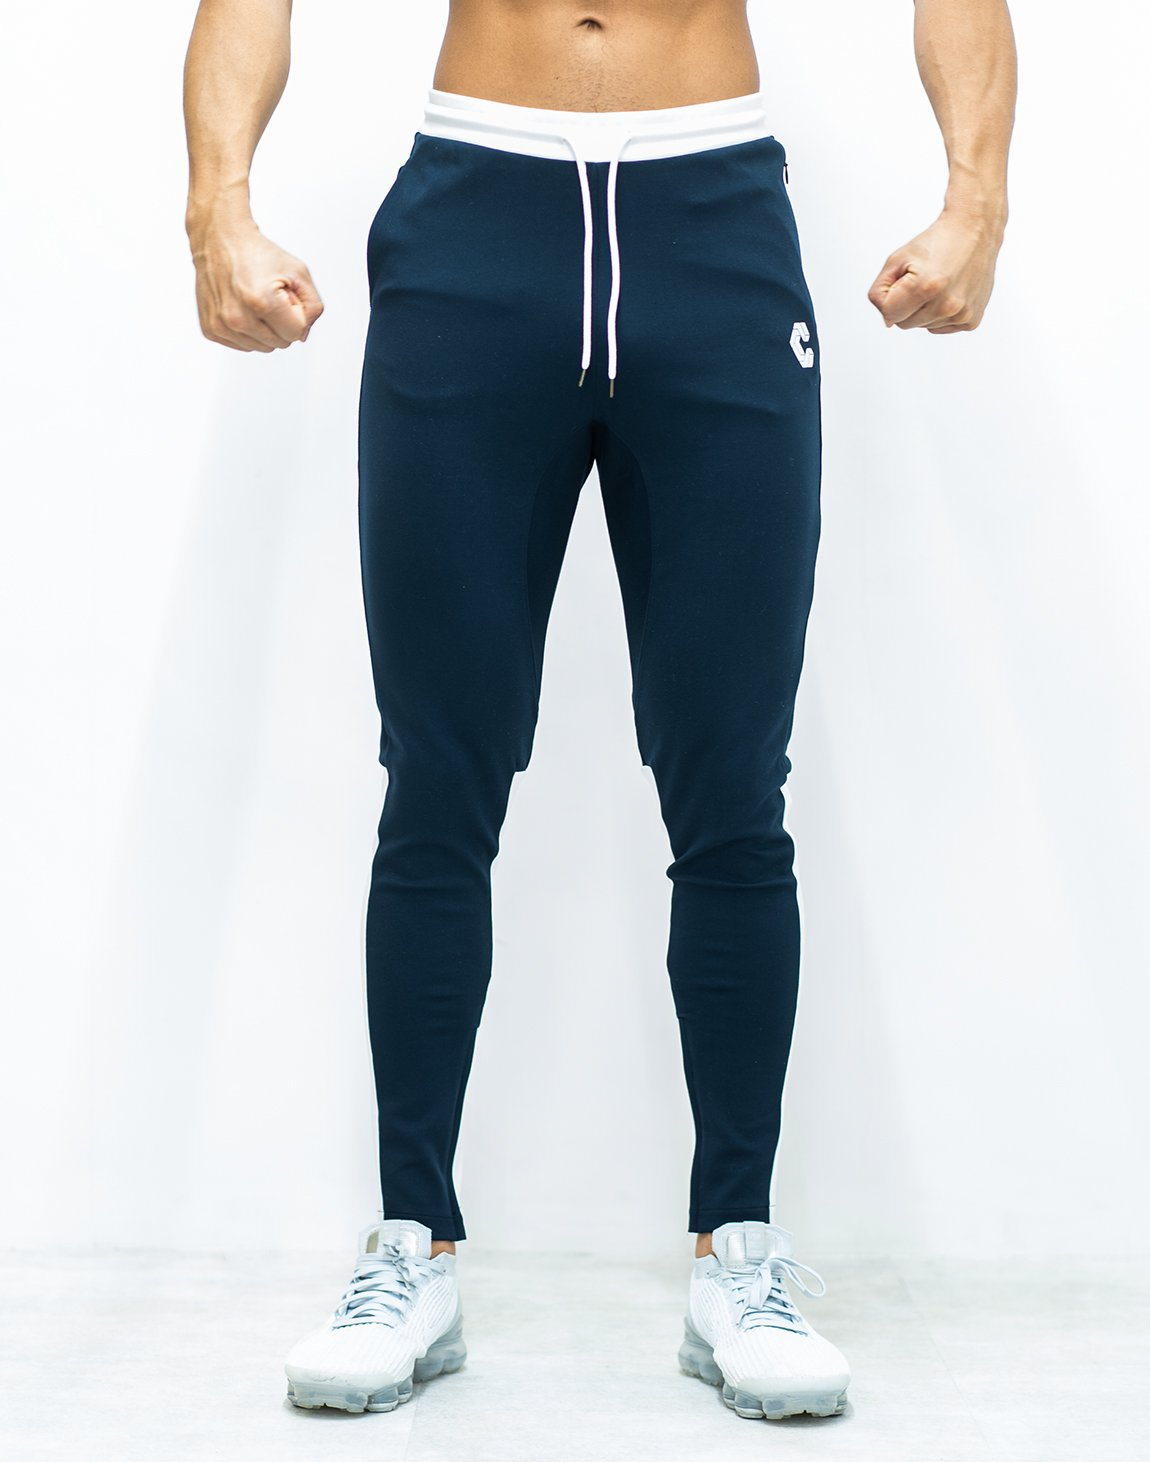 <img class='new_mark_img1' src='https://img.shop-pro.jp/img/new/icons1.gif' style='border:none;display:inline;margin:0px;padding:0px;width:auto;' />CRONOS CALF LOGO Bi-COLOR PANTS 【NAVY×WHITE】